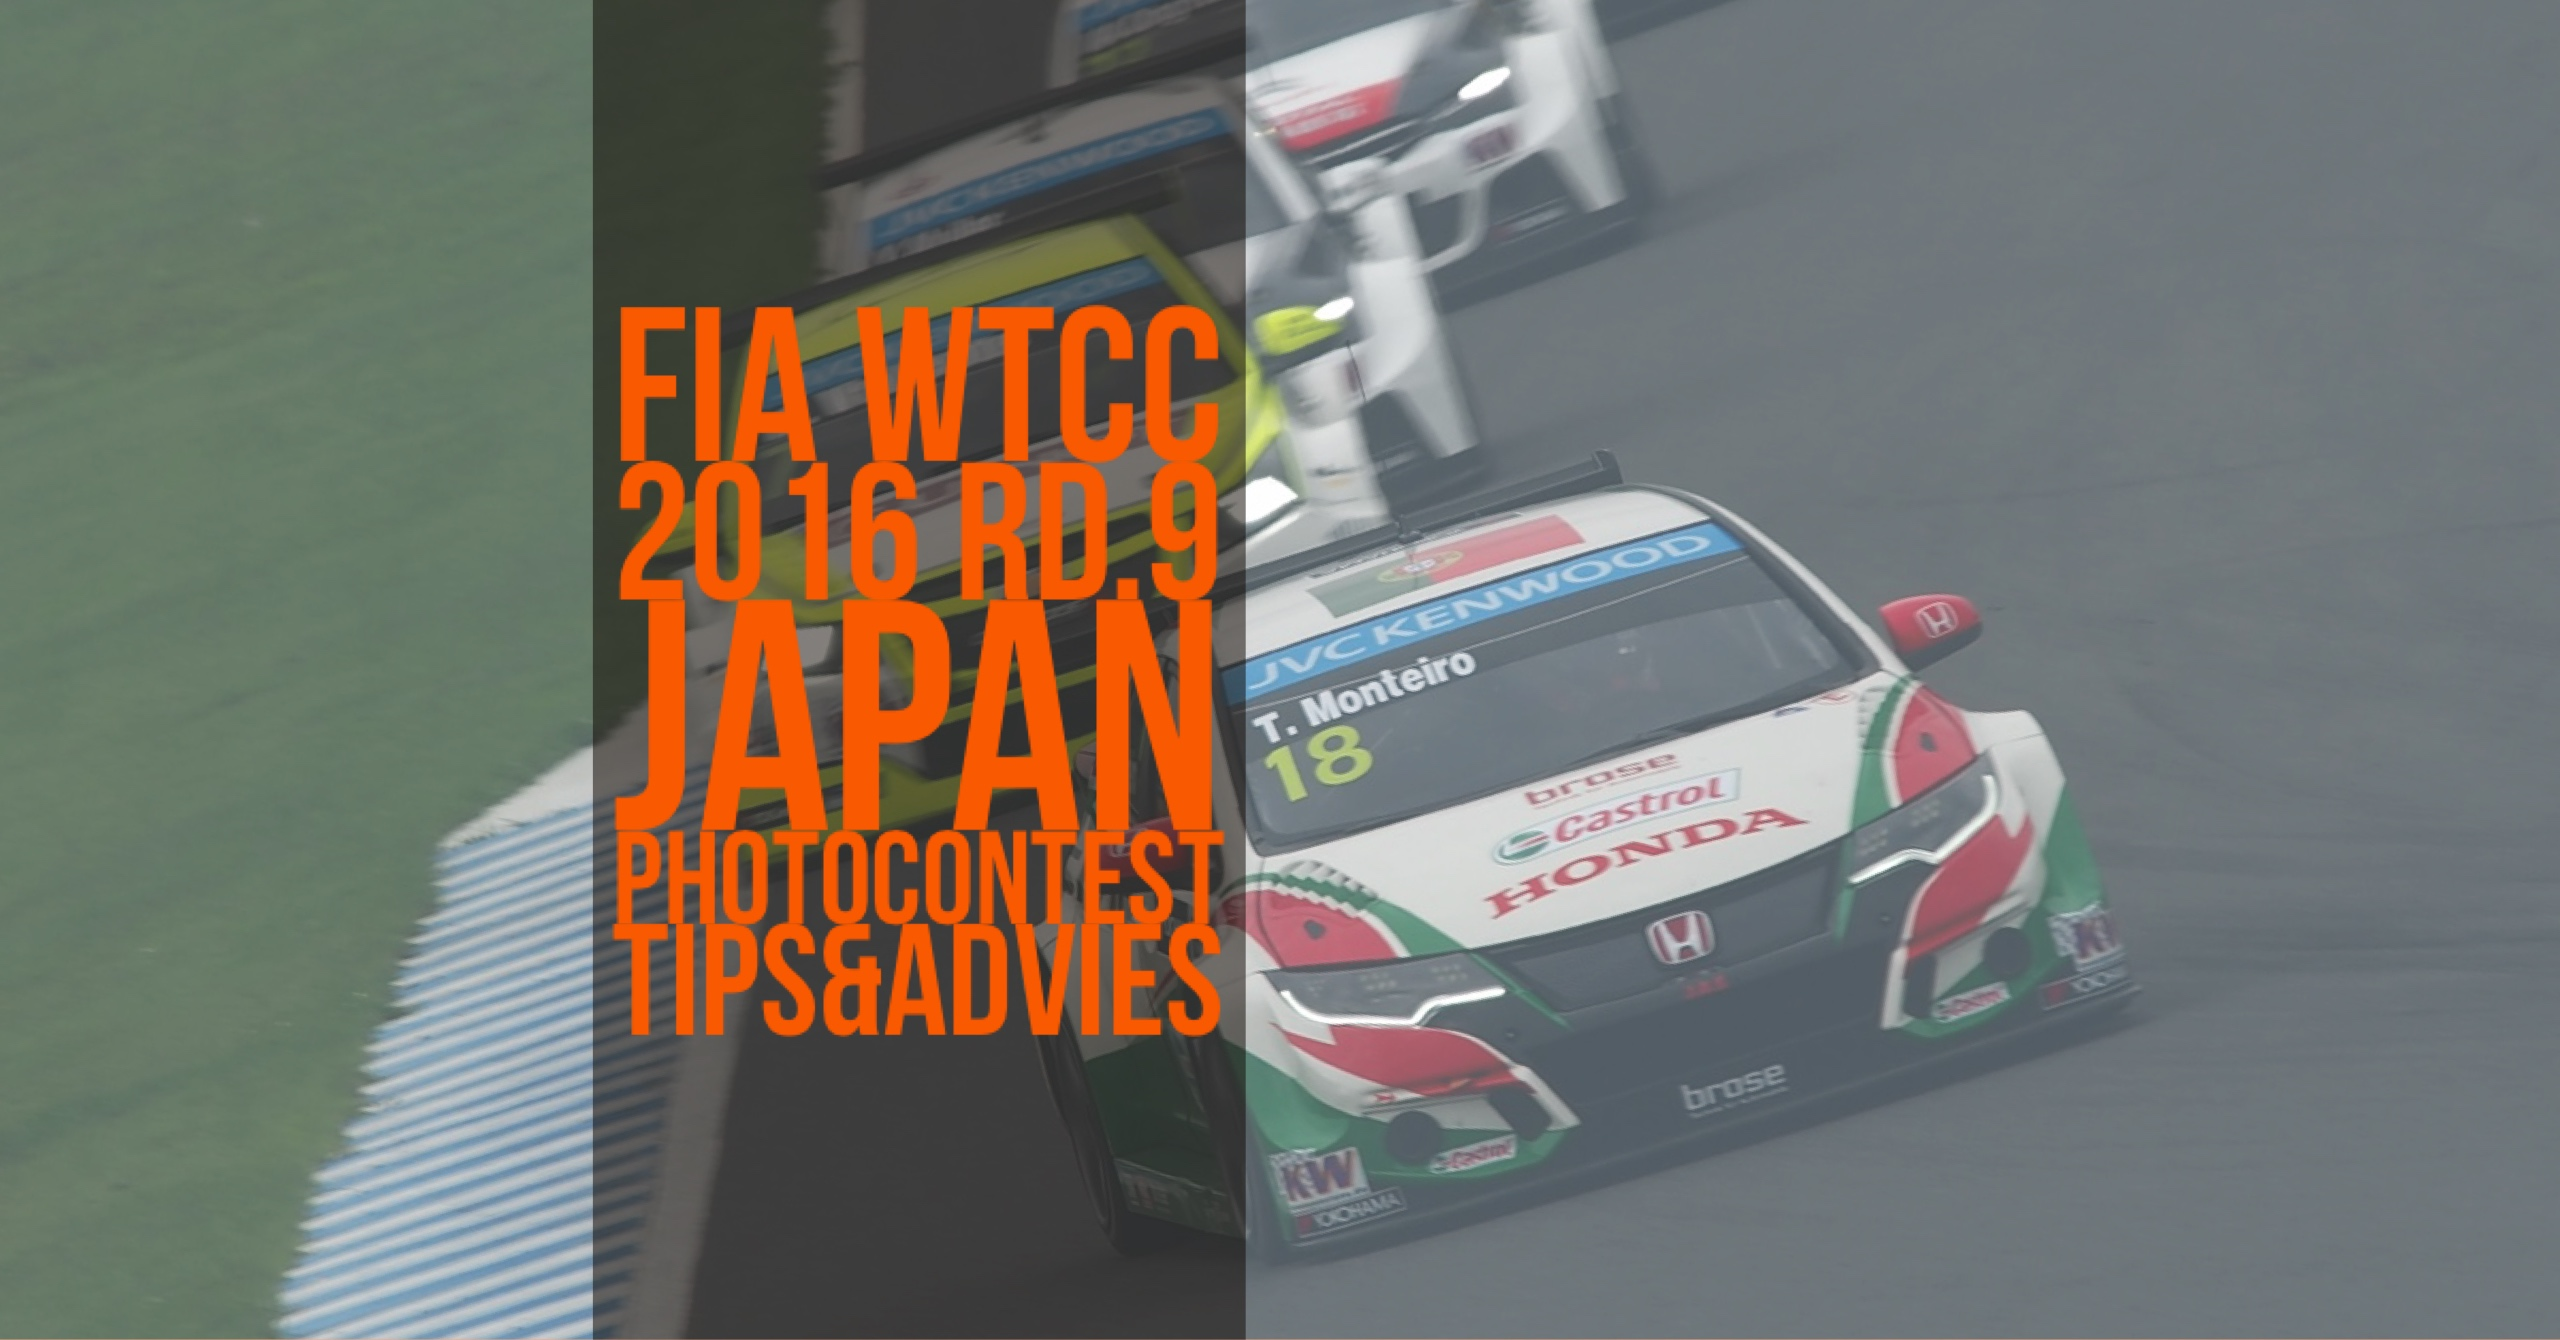 WTCC Photo-con Tips&Advies